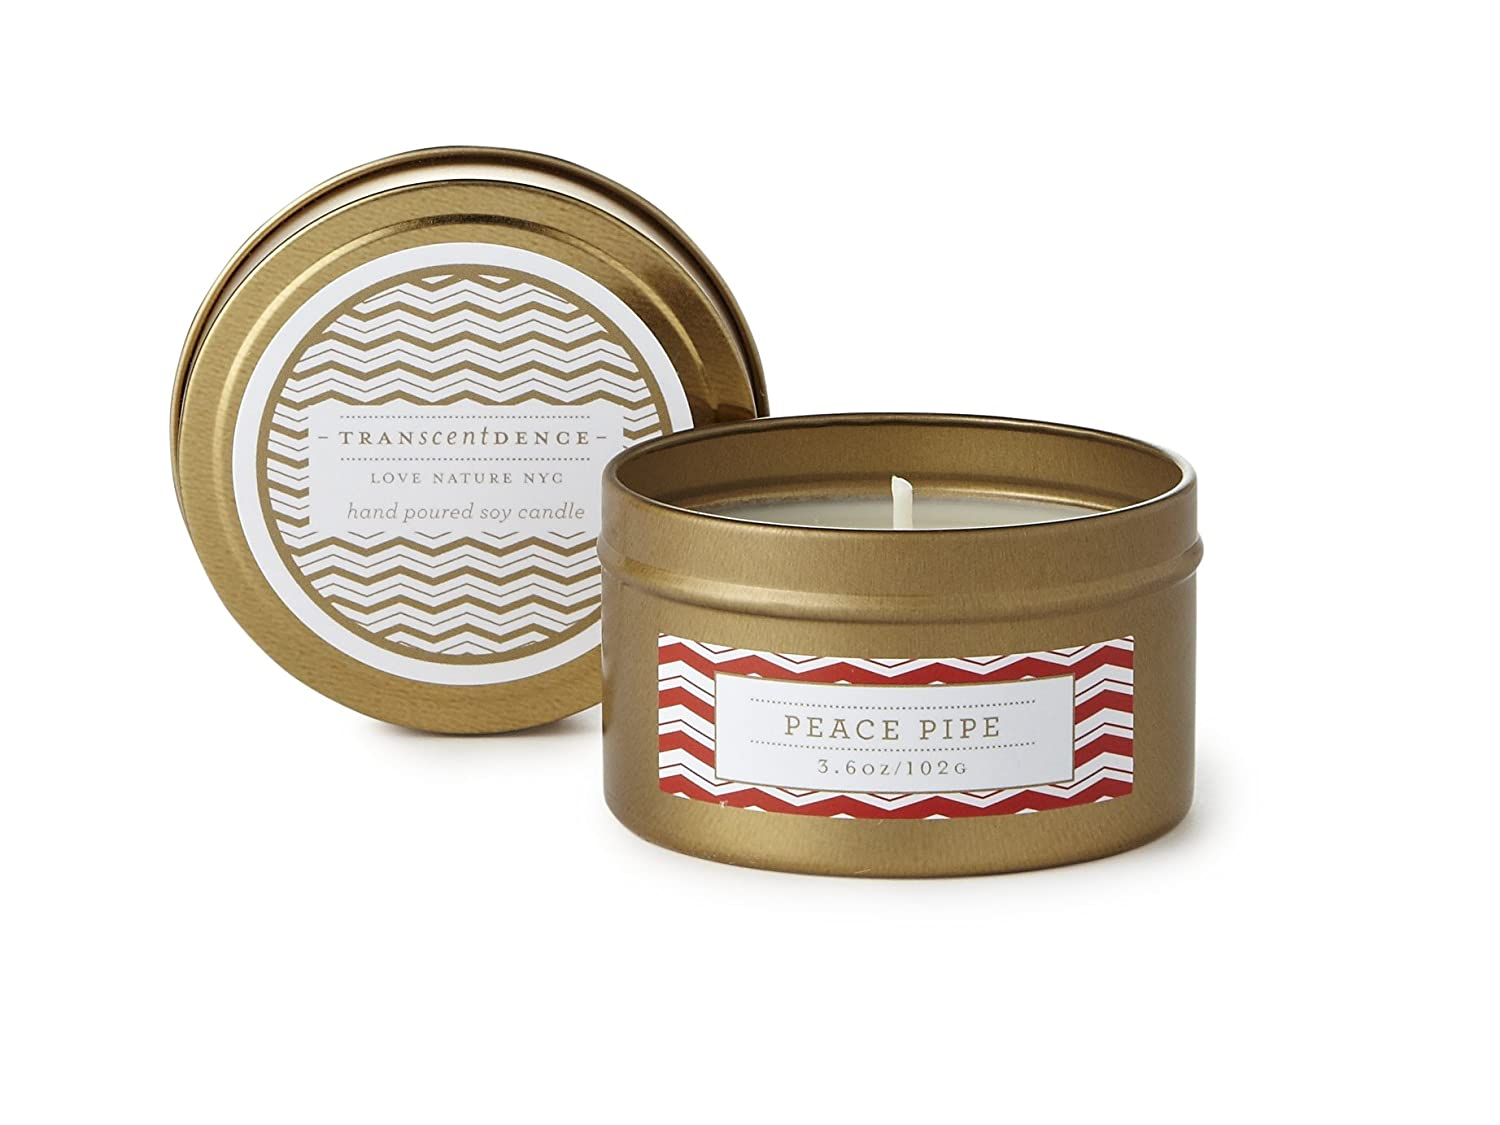 LOVE NATURE NYC Natural Soy Candle Tin, Peace Pipe Fragrance, Clean Burning Non-Toxic, Scent Notes of Fresh Cut Tobacco Leaves & Cherrywood, 25-30 Hours